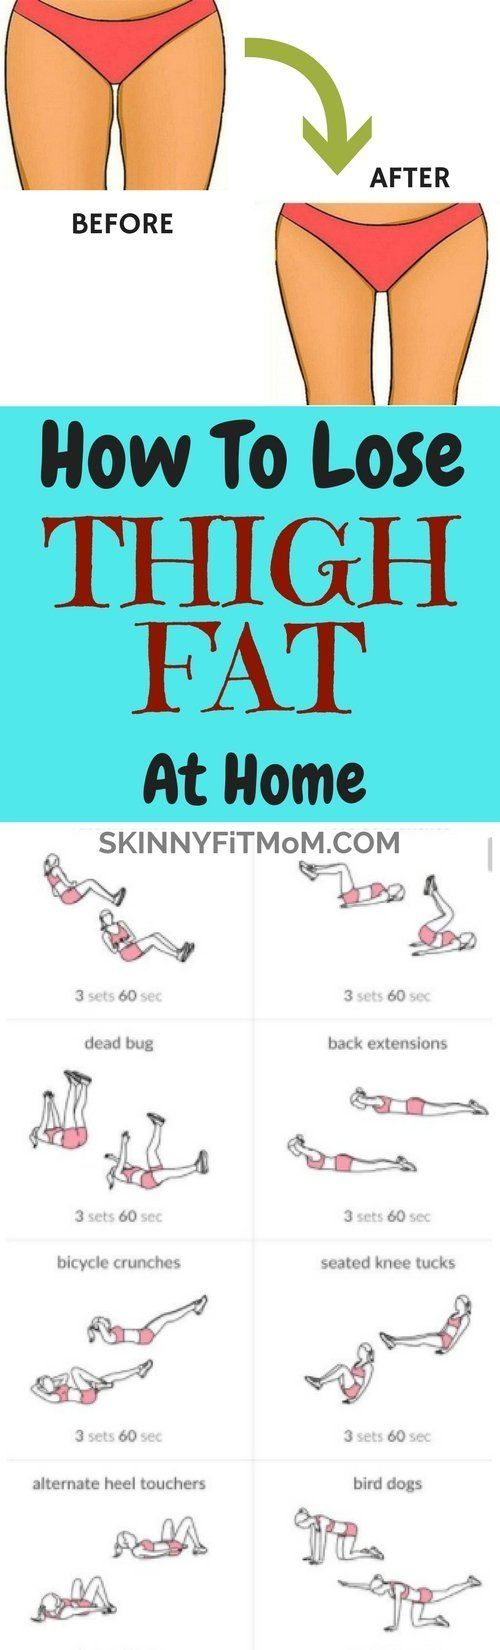 10 Best Exercises To Lose Thigh Fat Fast At Home by kenya